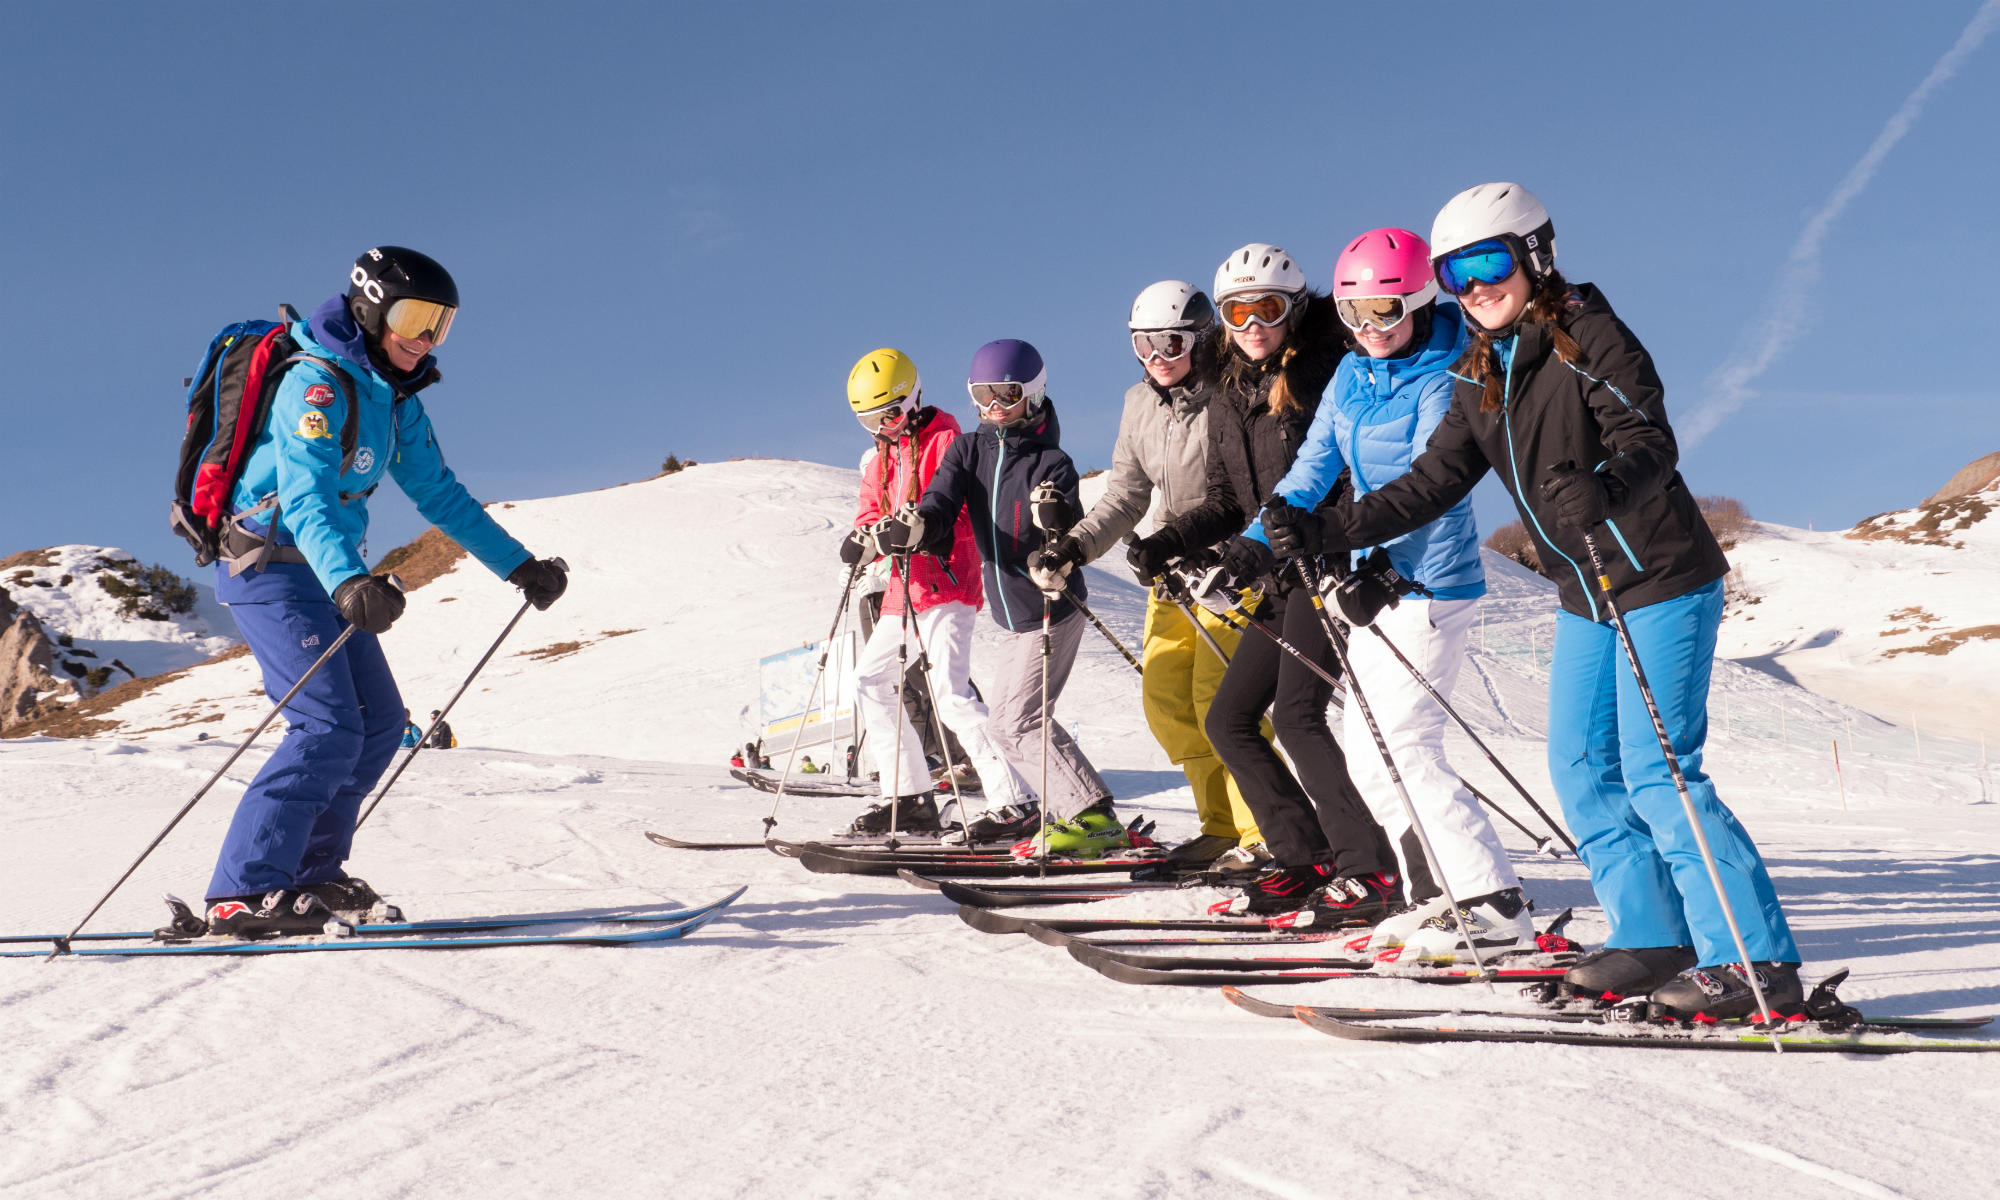 A ski instructor with a group of teenagers on a sunny day.